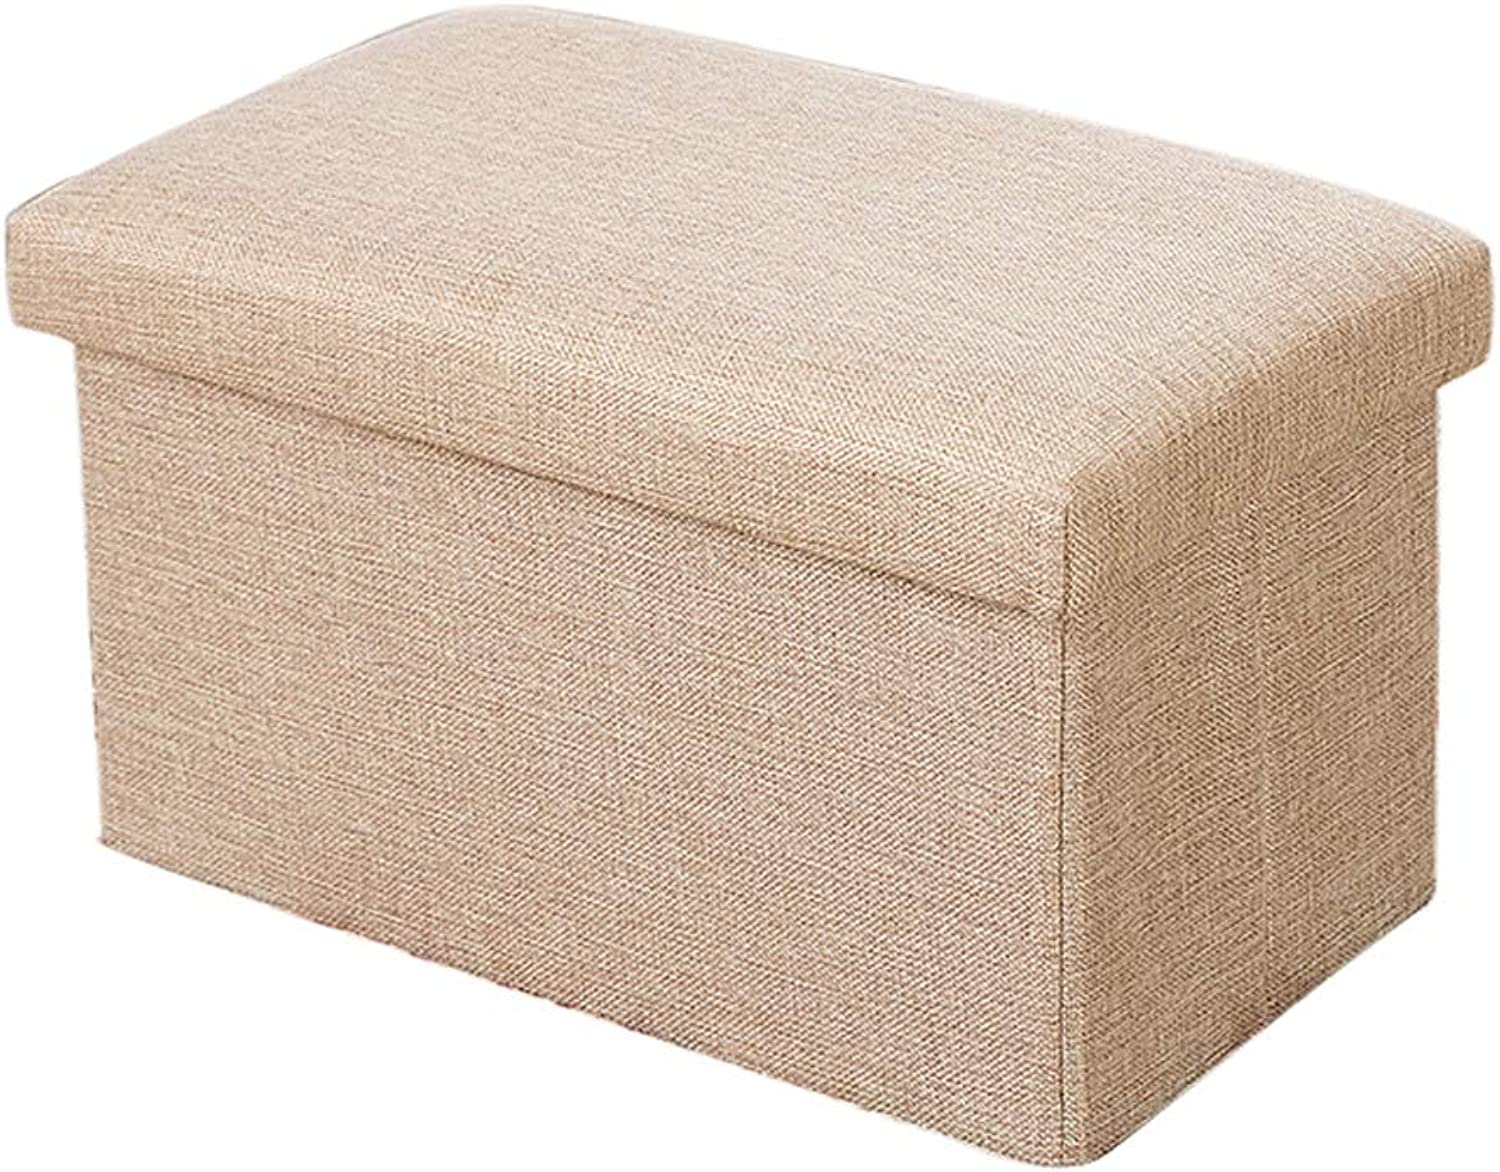 Storage Stool - Home Multi-Function Fabric Storage Stool Multi-color and Multi-Special Optional Storage Stool Can Sit Can Be Stored Cotton Linen Box MENA UK (color   Khaki, Size   76  38  38CM)